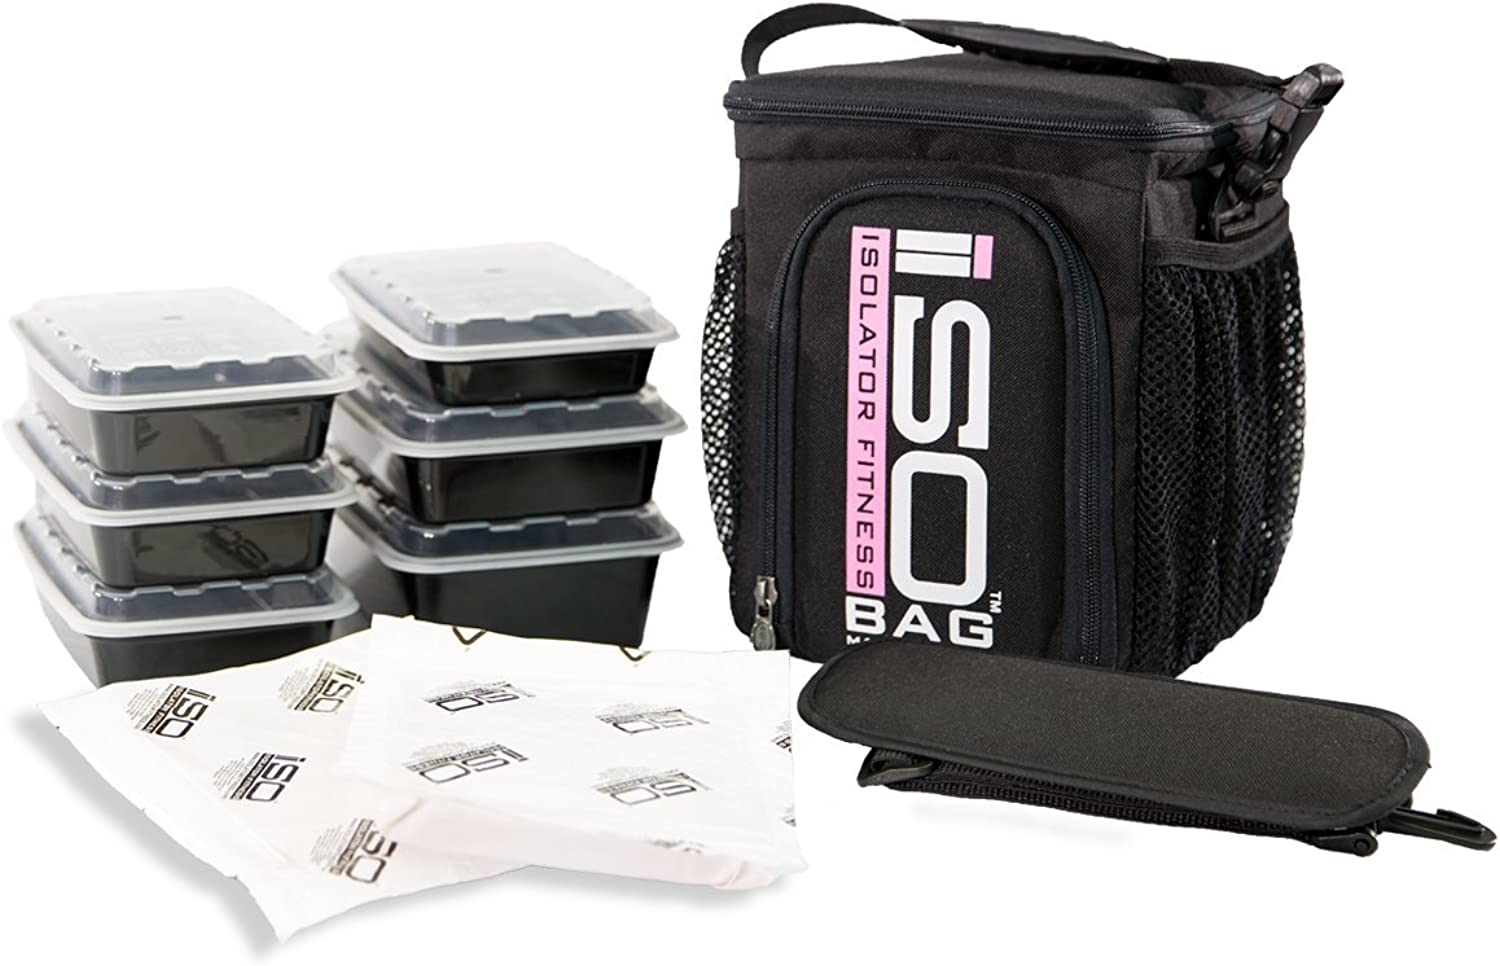 Isolator Fitness 3 Meal ISOCUBE Meal Prep Management Insulated Lunch Bag Cooler with 6 Stackable Meal Prep Containers, 2 ISOBRICKS, and Shoulder Strap - MADE IN USA (Black Pink Logo)